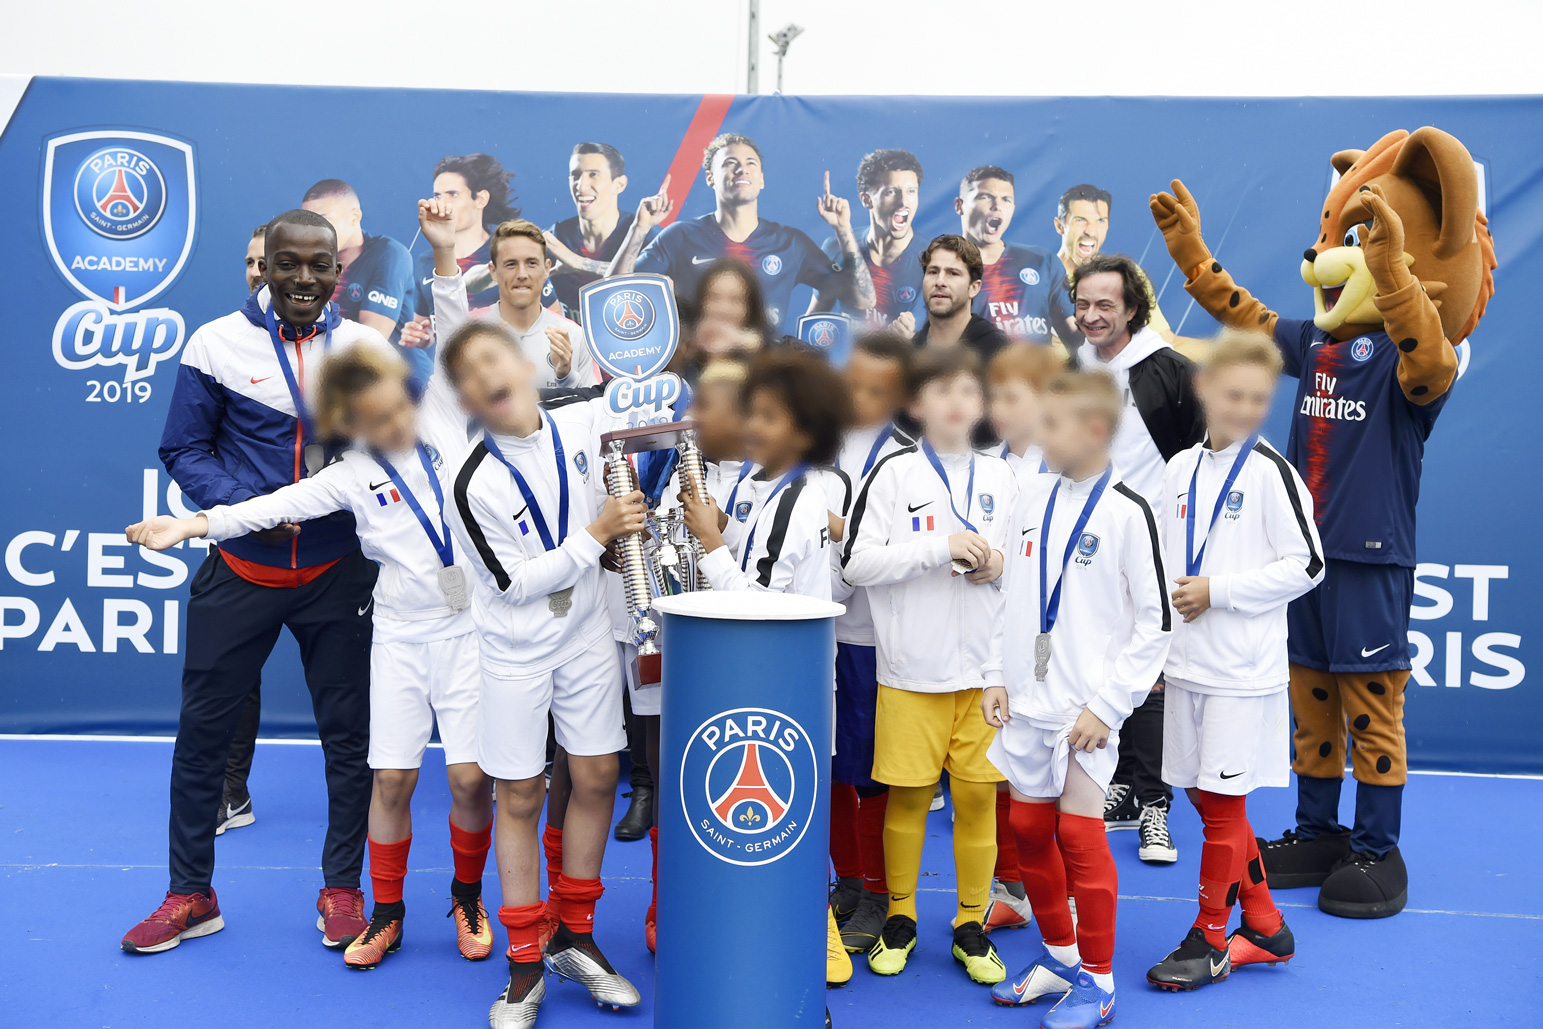 PSG_Academy_Cup_19_04